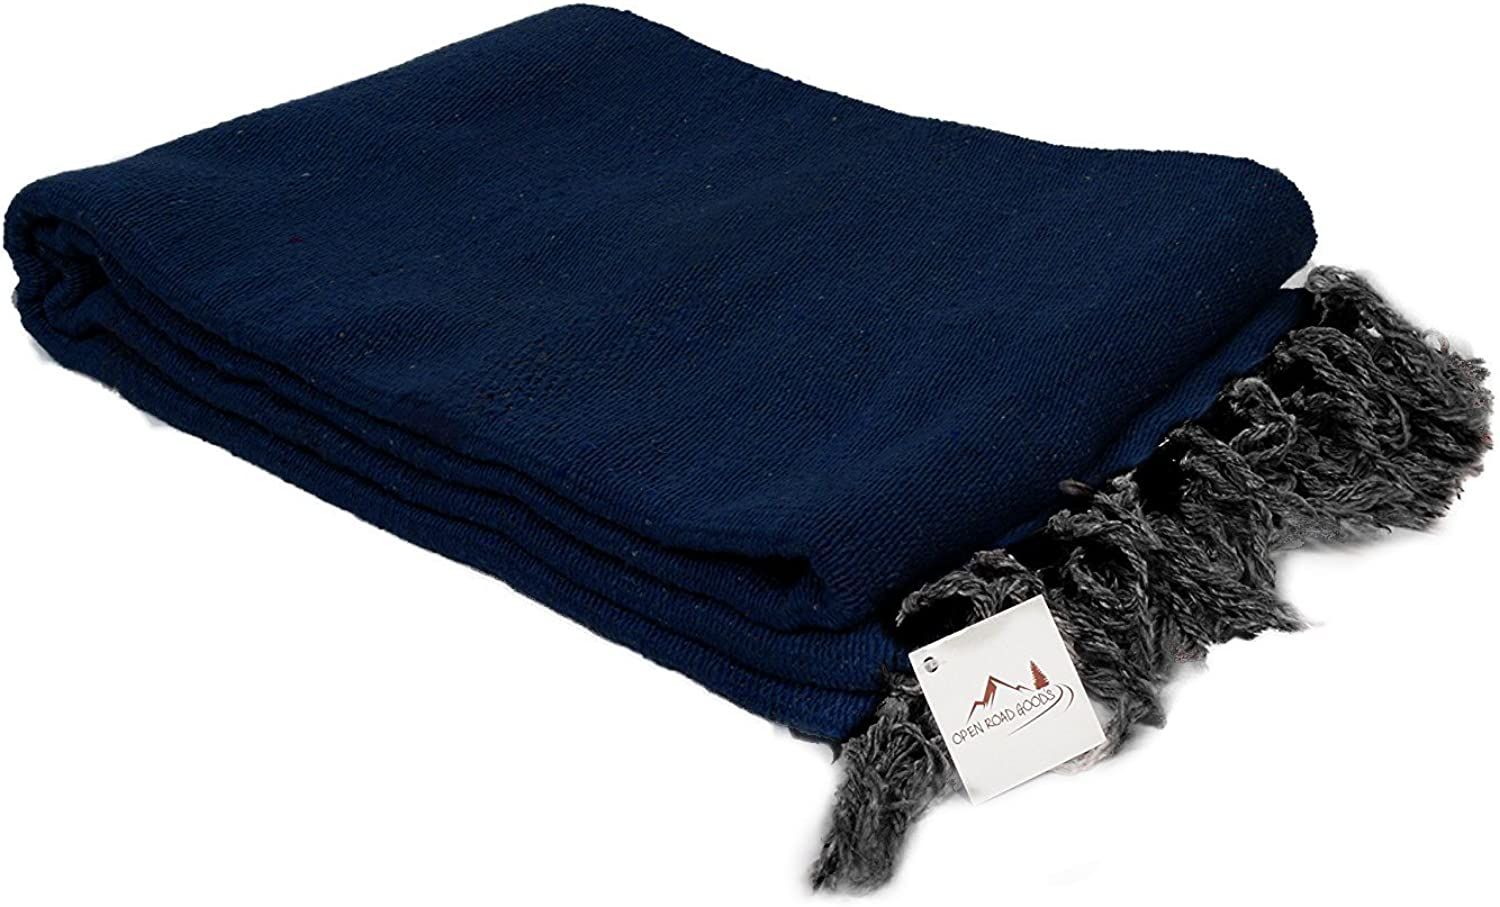 Open Road Goods Handmade Solid color Yoga Blanket  Thick Mexican Blanket or Throw  Made for Yoga